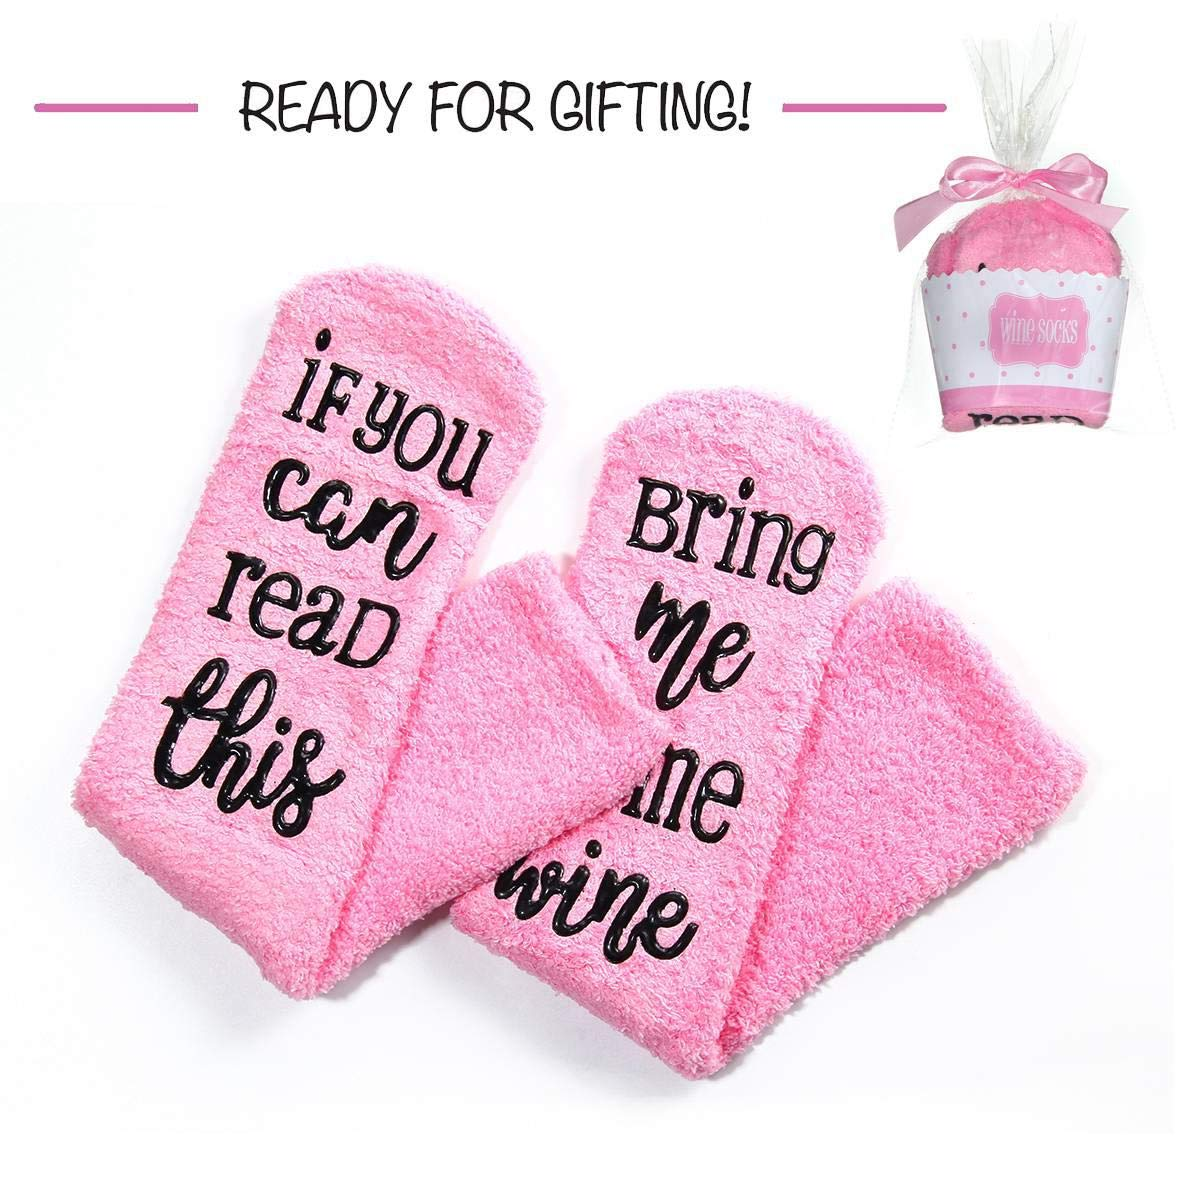 Wine Socks, Womdee Wine Lover Socks with If You Can Read This Bring Me Some Wine and Cupcake Gift Packaging Funny Novelty Winter Socks for Wife Women Present (Pink)